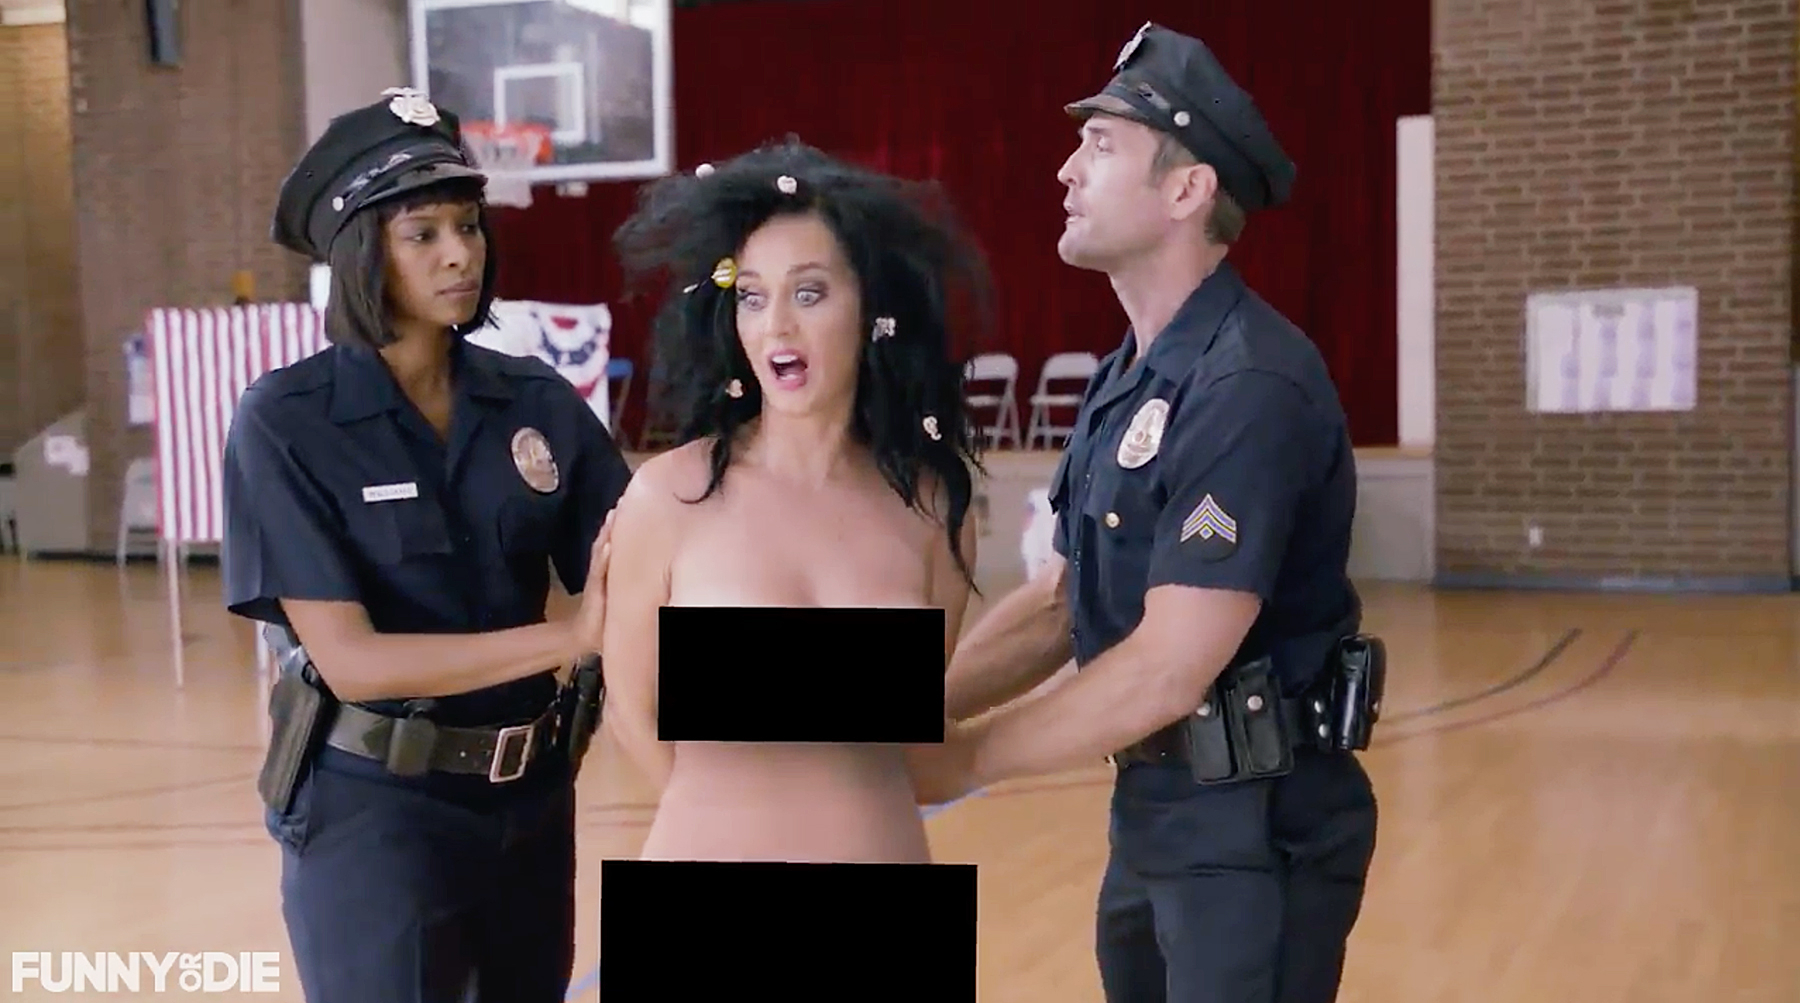 Katy Perry takes her clothes off for skit to encourage people to vote